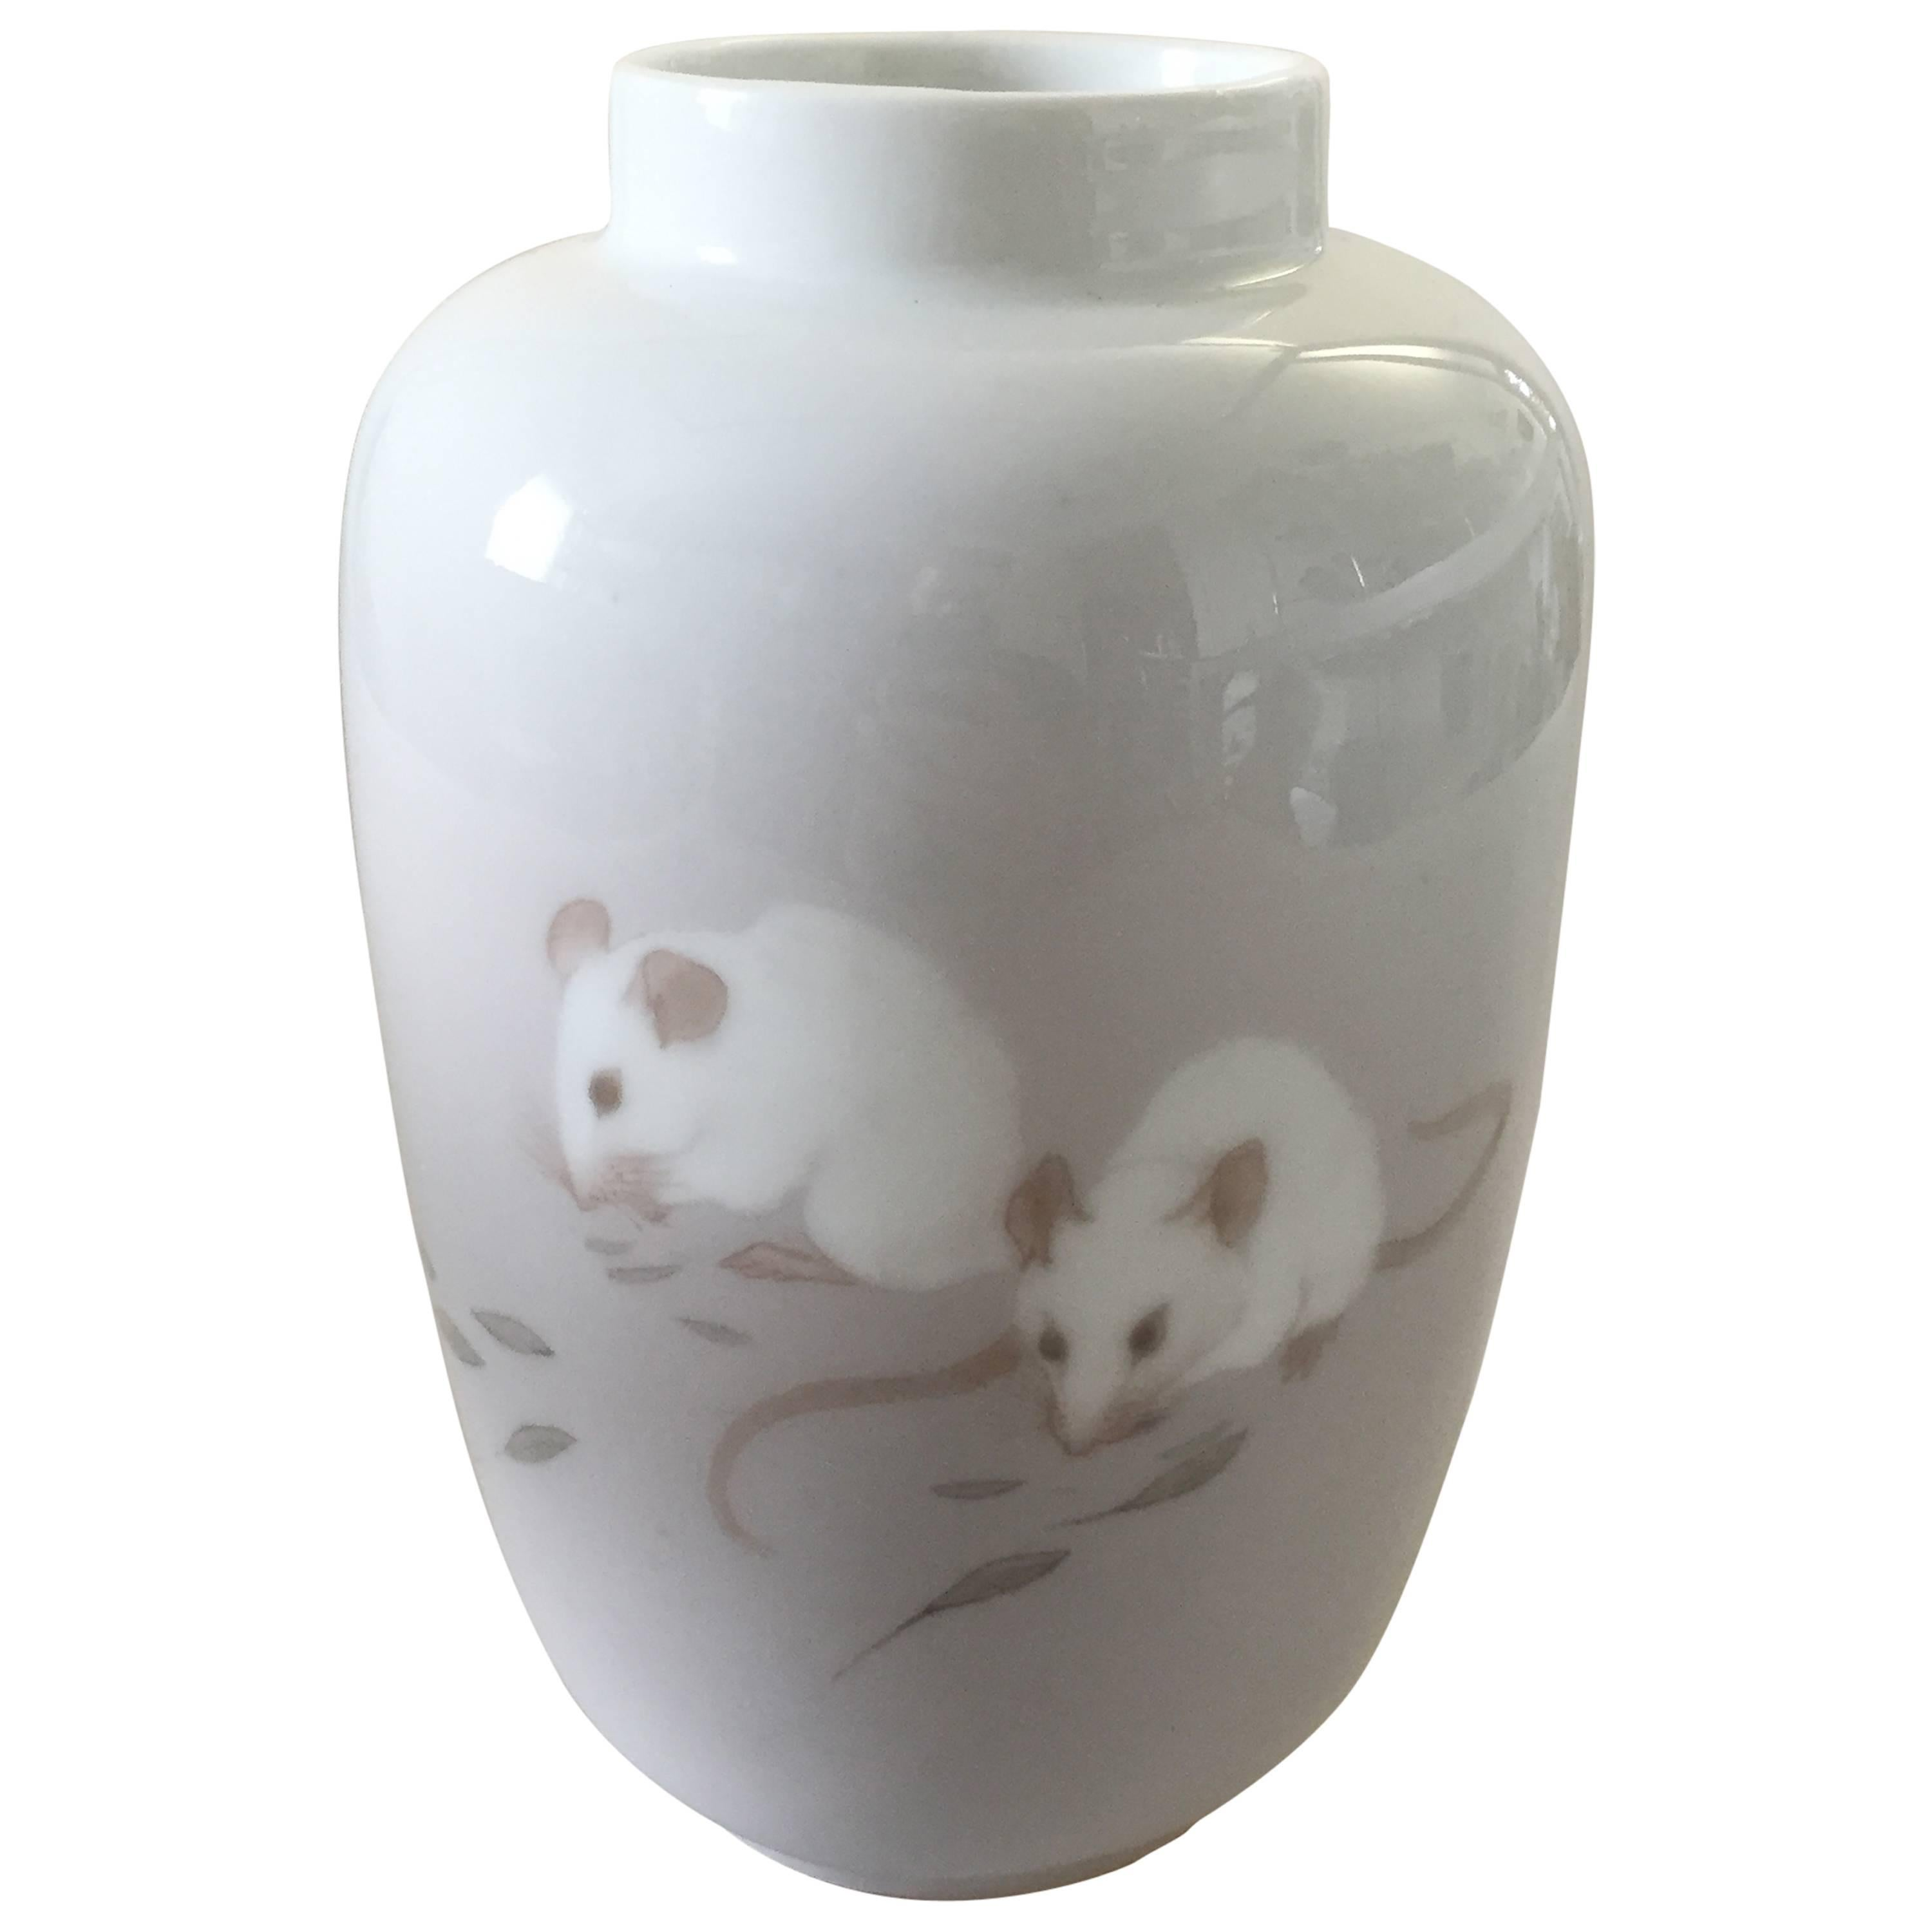 Royal Copenhagen Unique Art Nouveau Vase with Mice Decoration